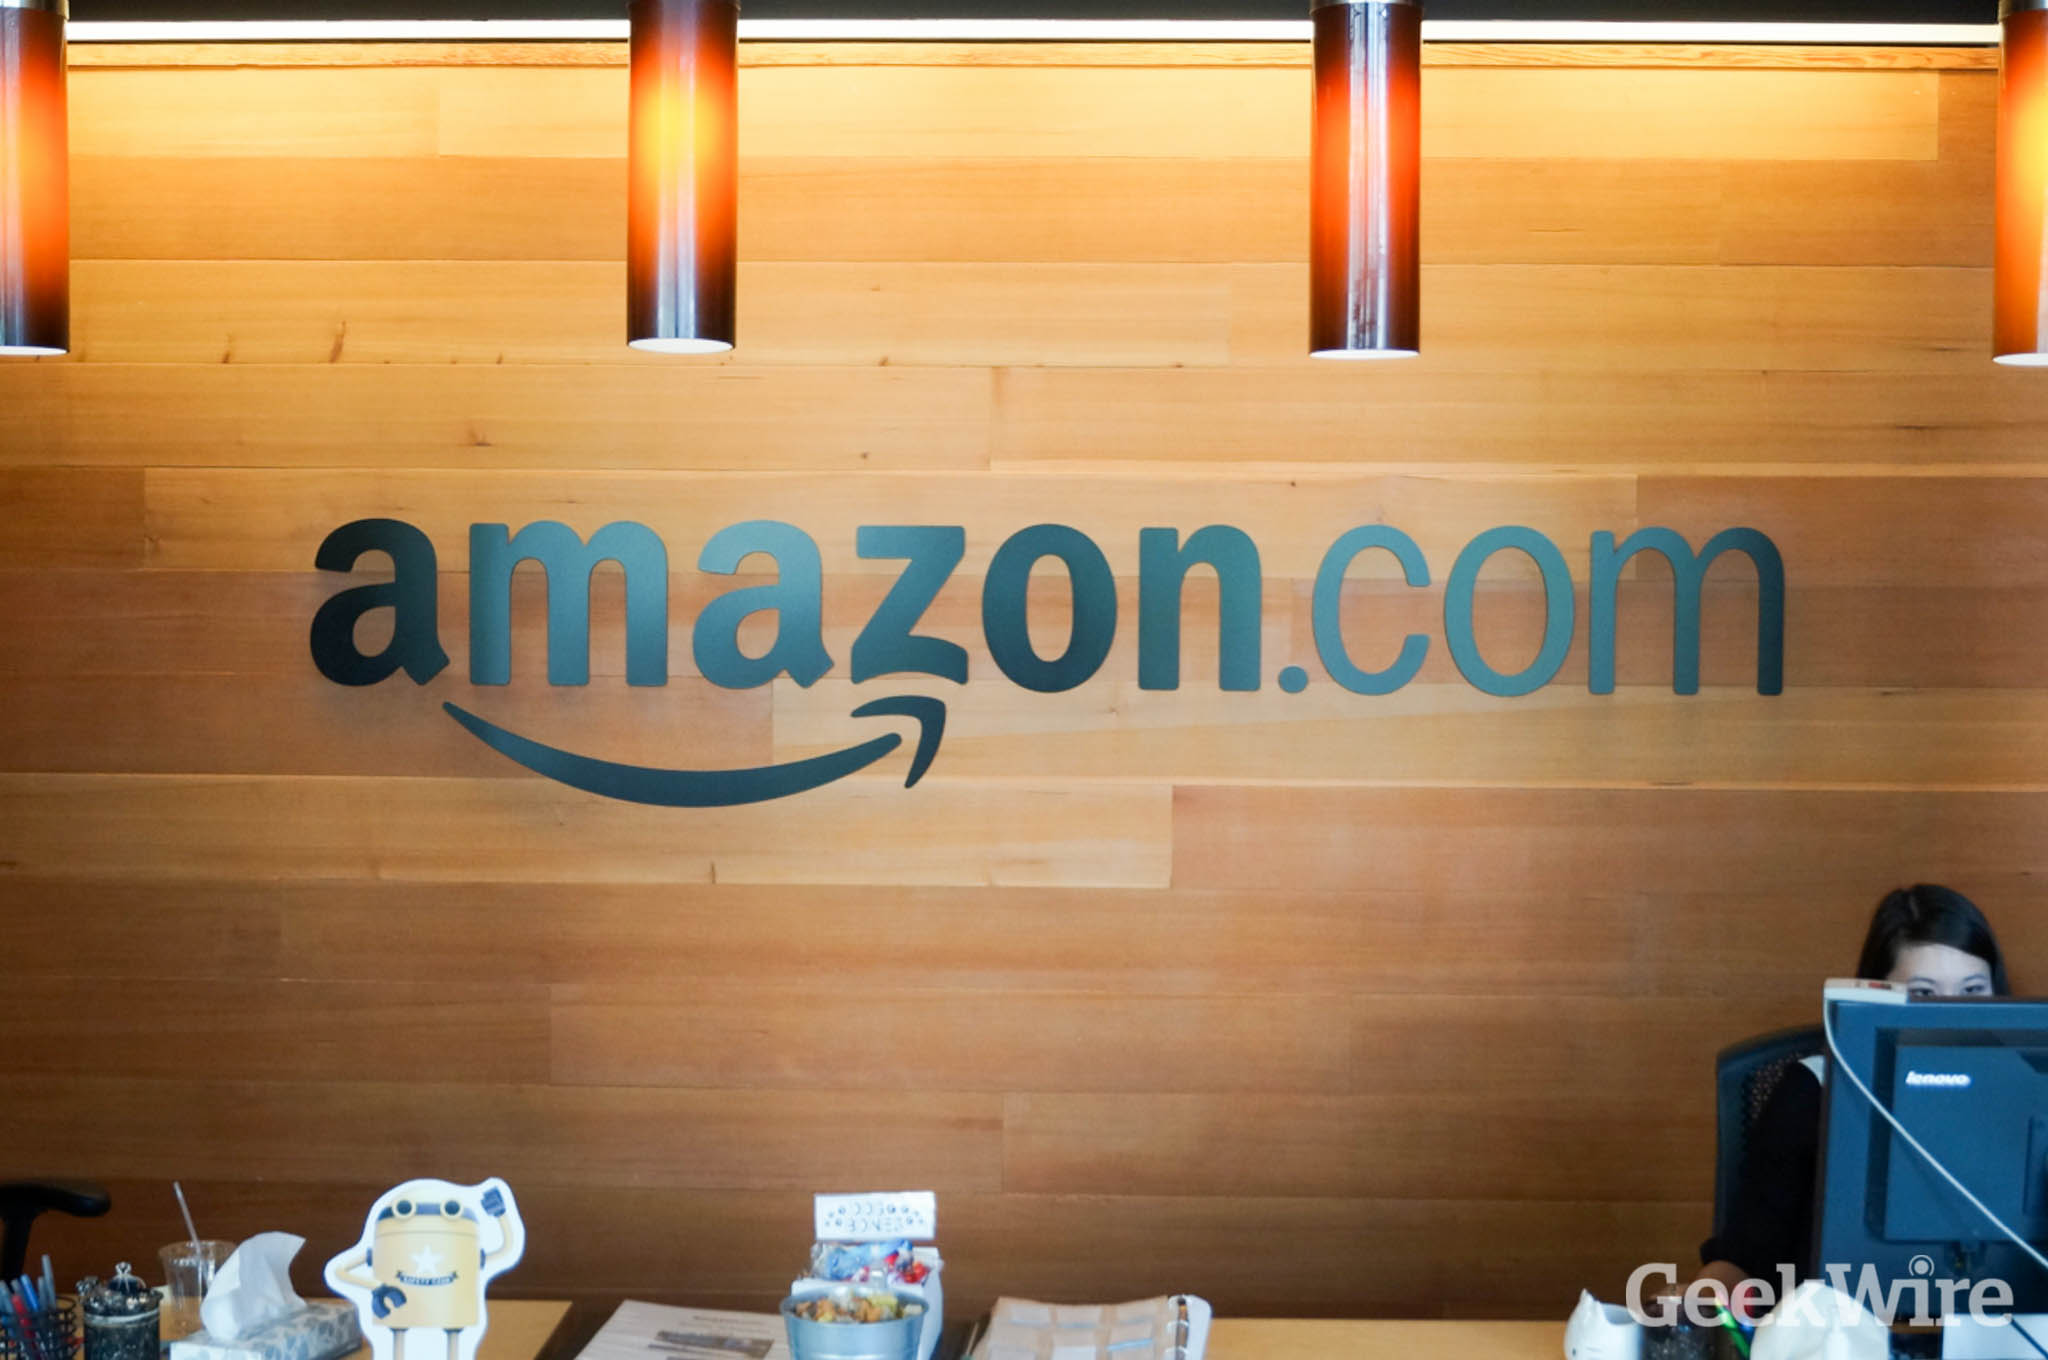 Amazon challenges Google and Facebook with surprising new multi-billion dollar business